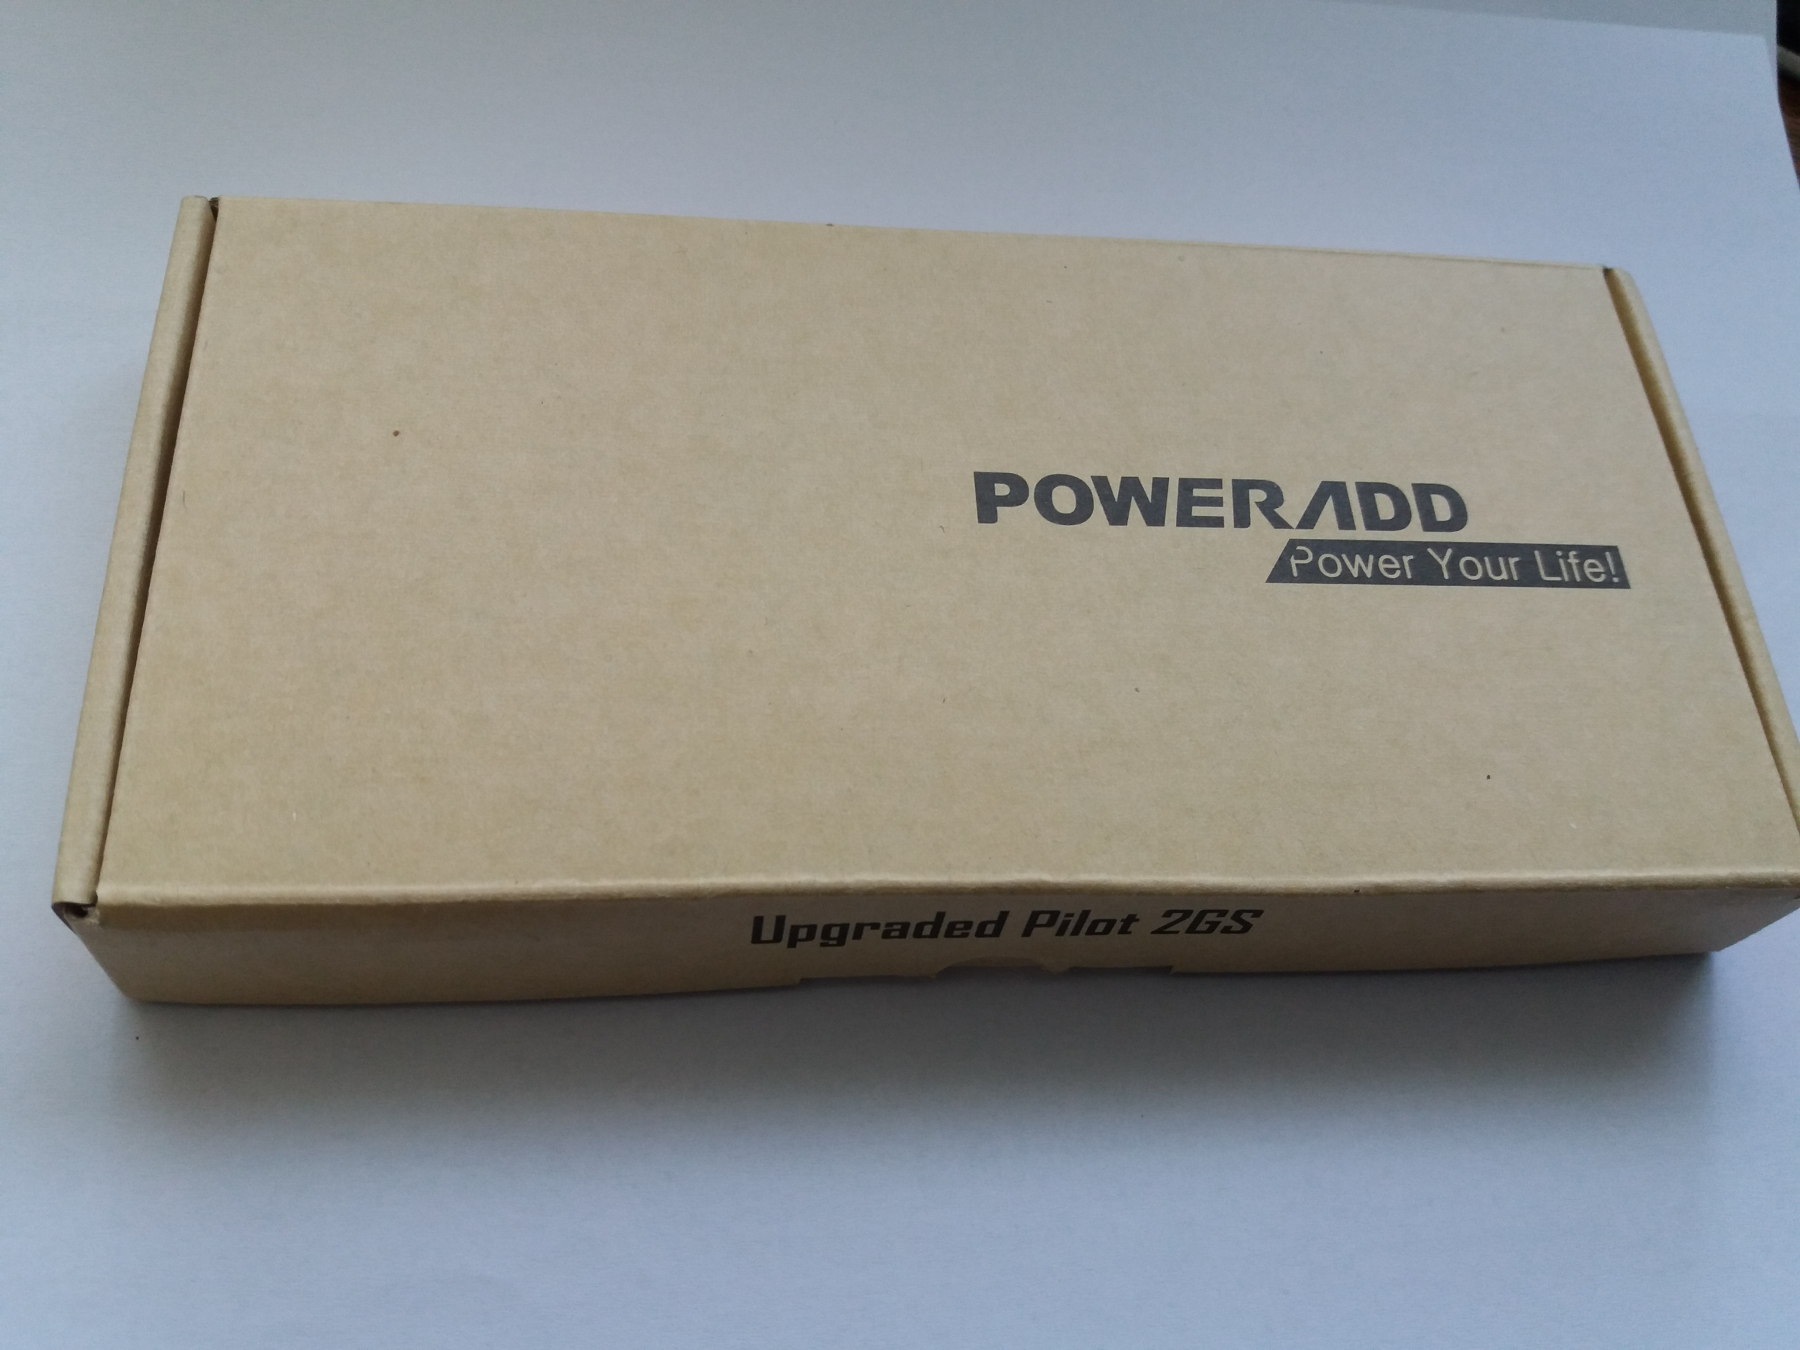 Chargeur Batterie Portable : Poweradd 10000mAh